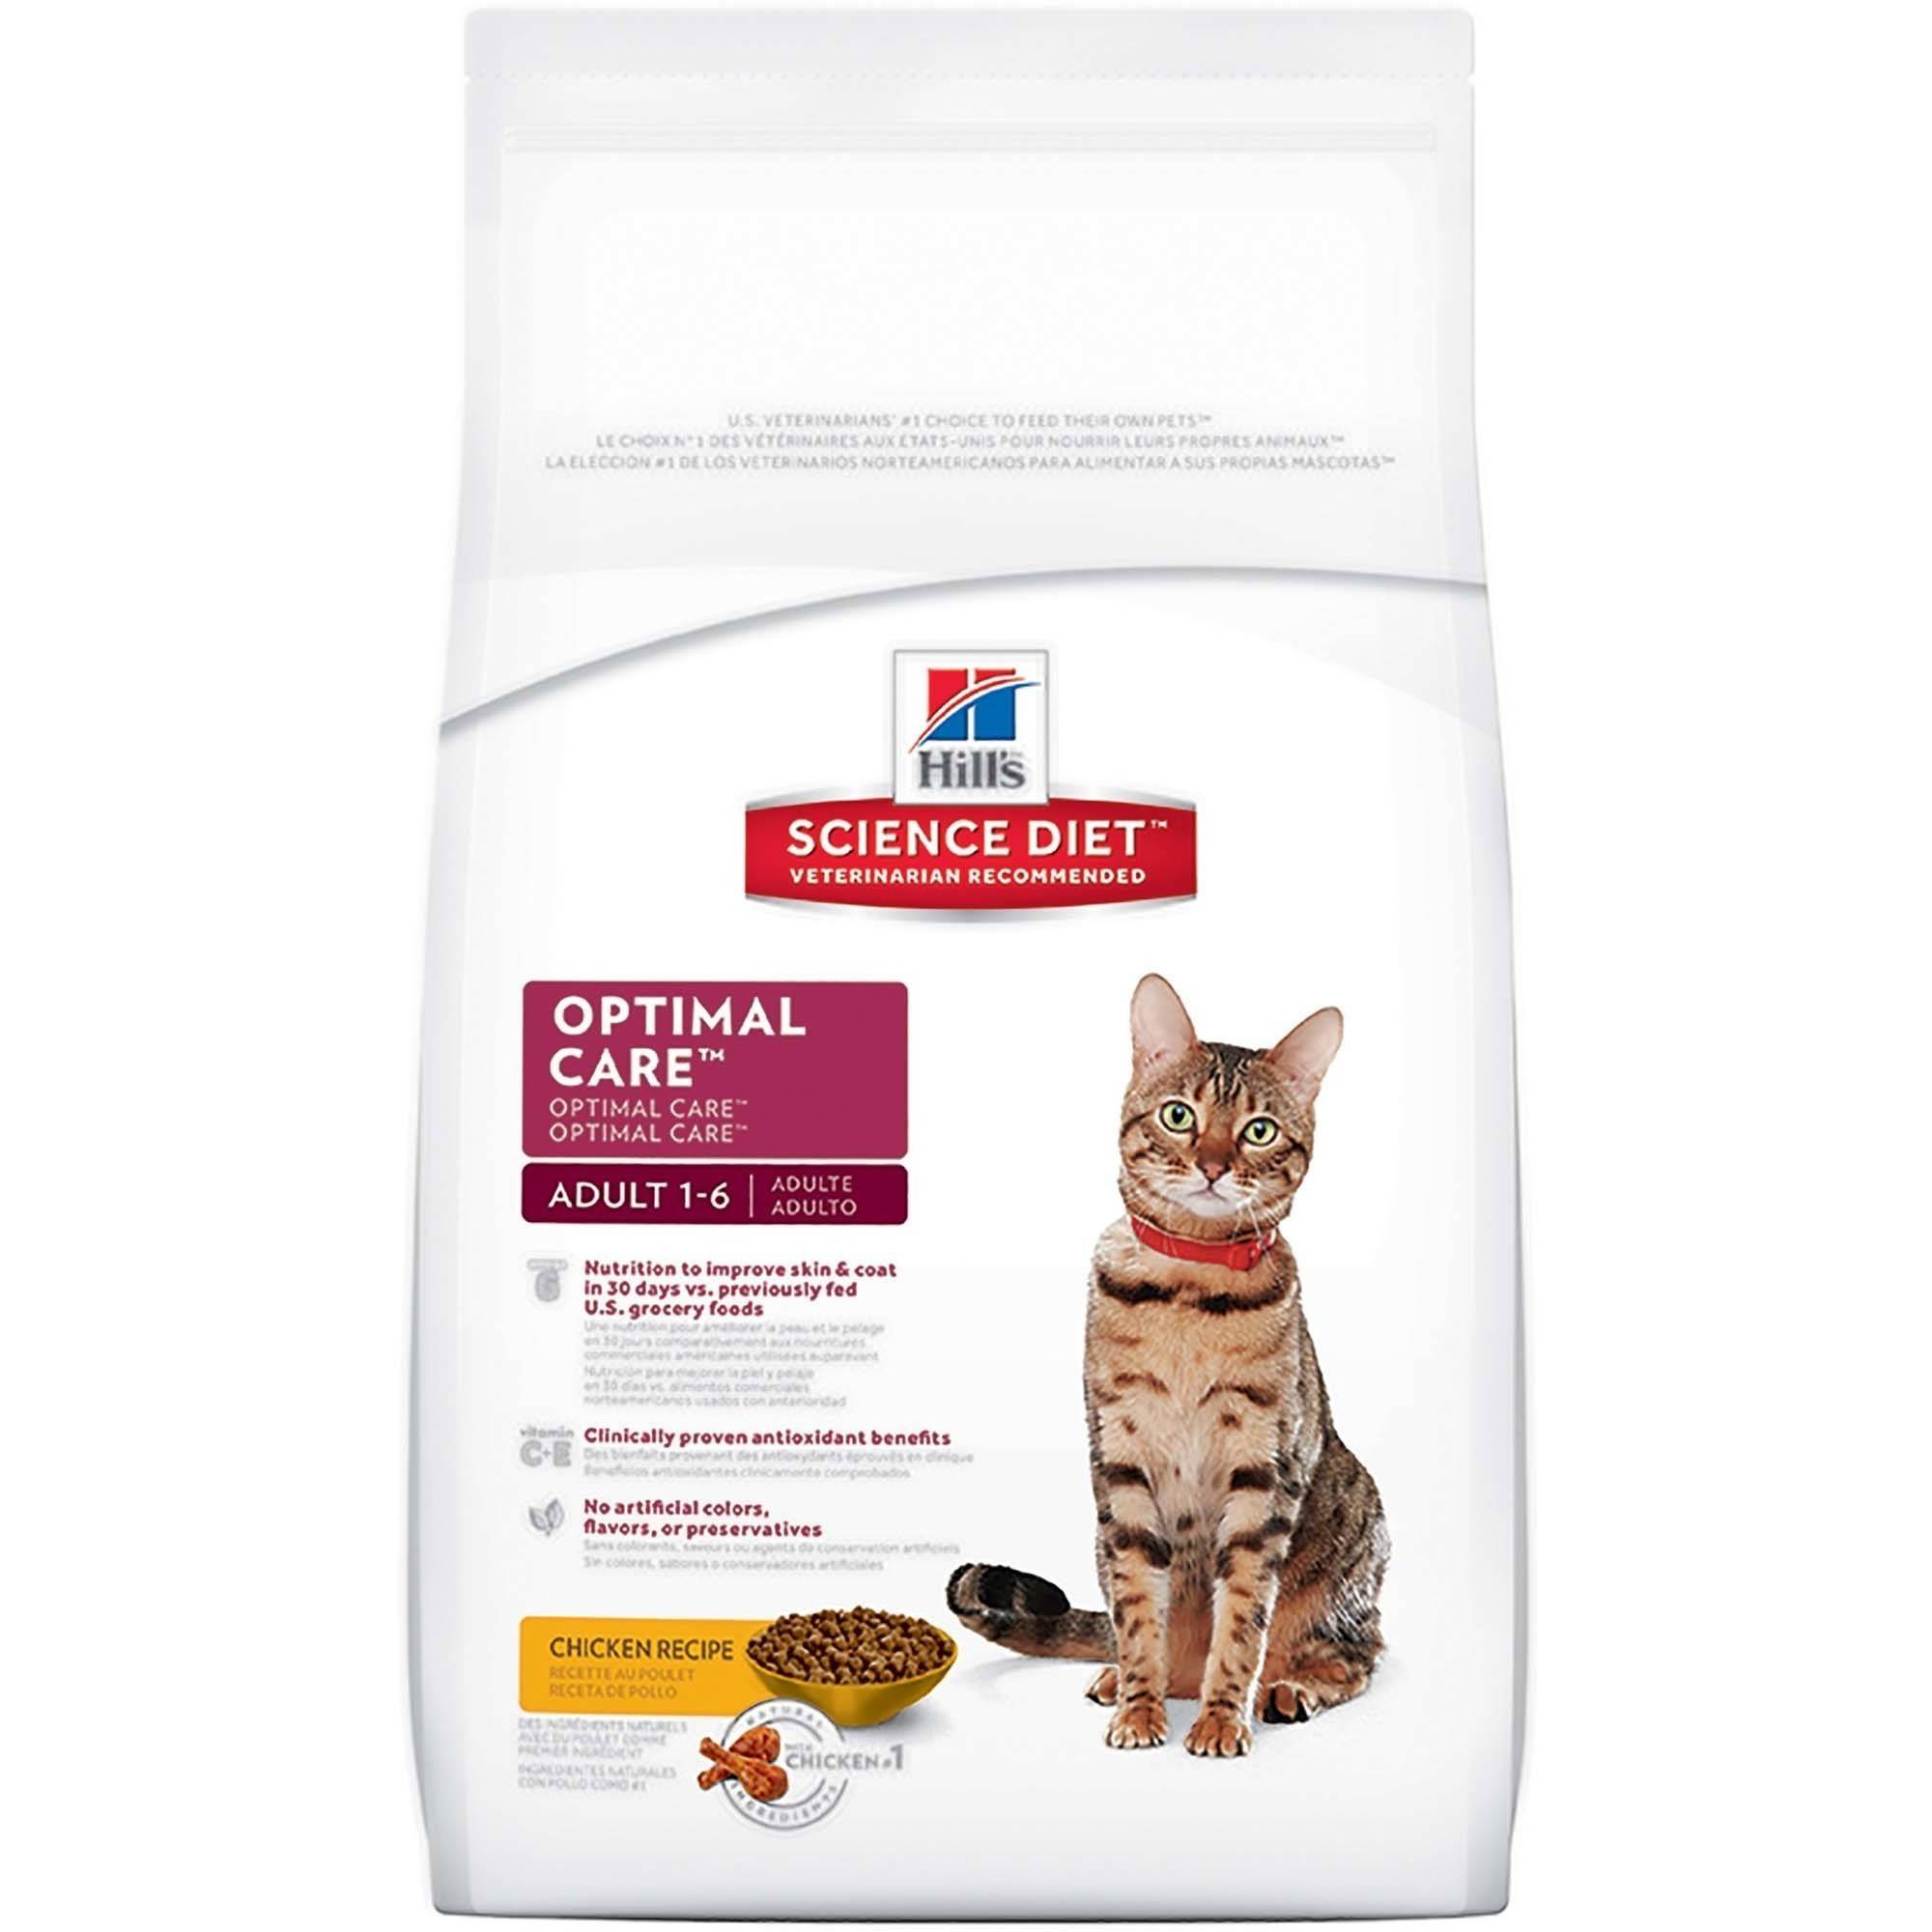 Hill's Science Diet Adult Optimal Care Chicken Recipe Dry Cat Food, 7 lb bag by HILL'S PET NUTRITION, INC.